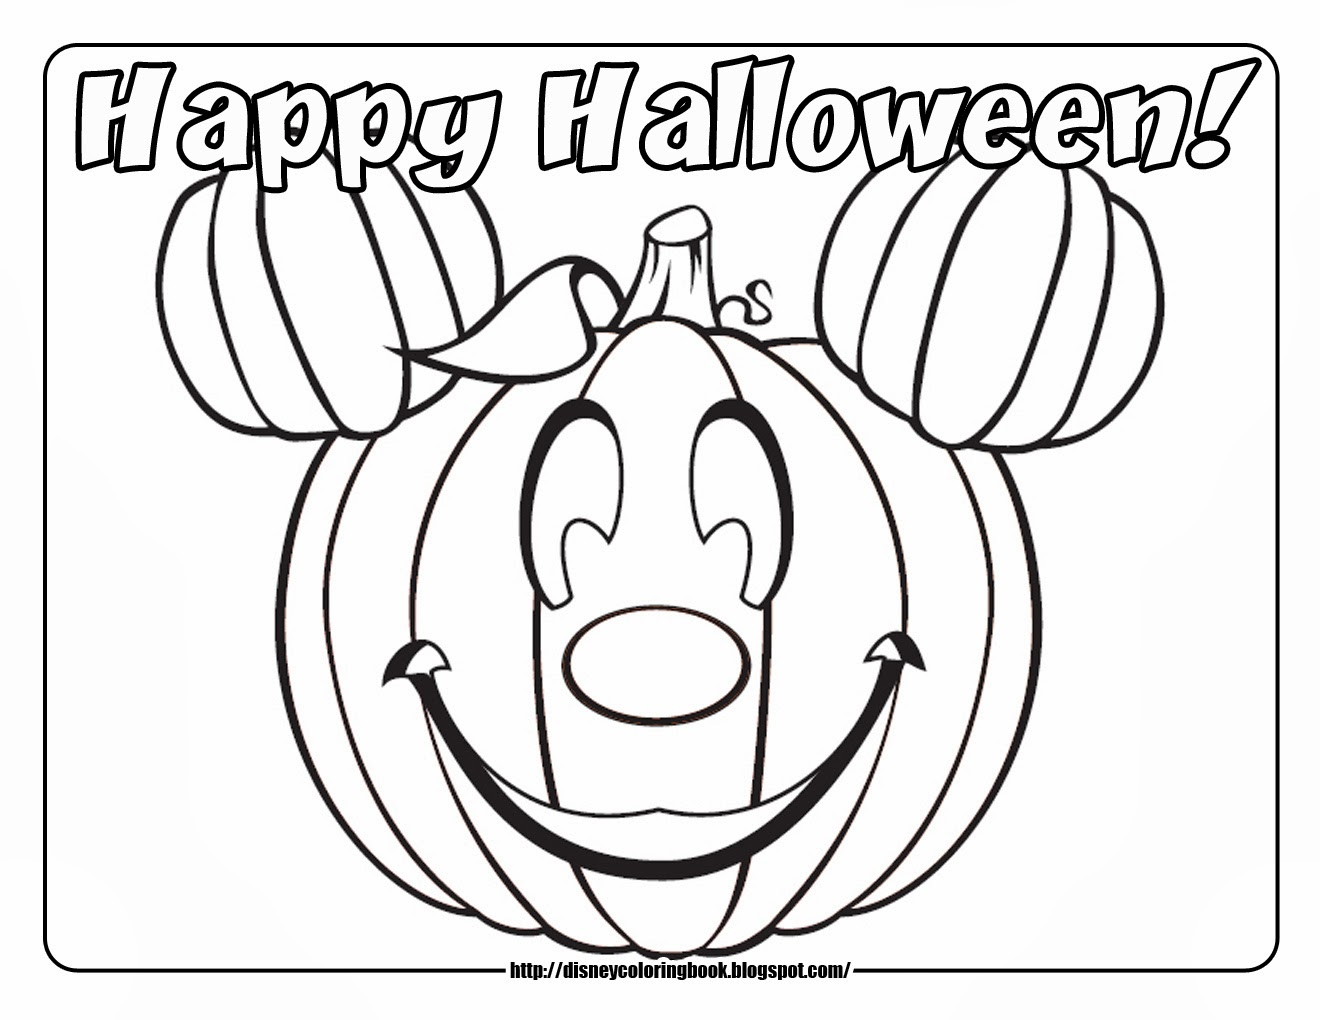 halloween printable color pages halloween coloring pages free printable minnesota miranda